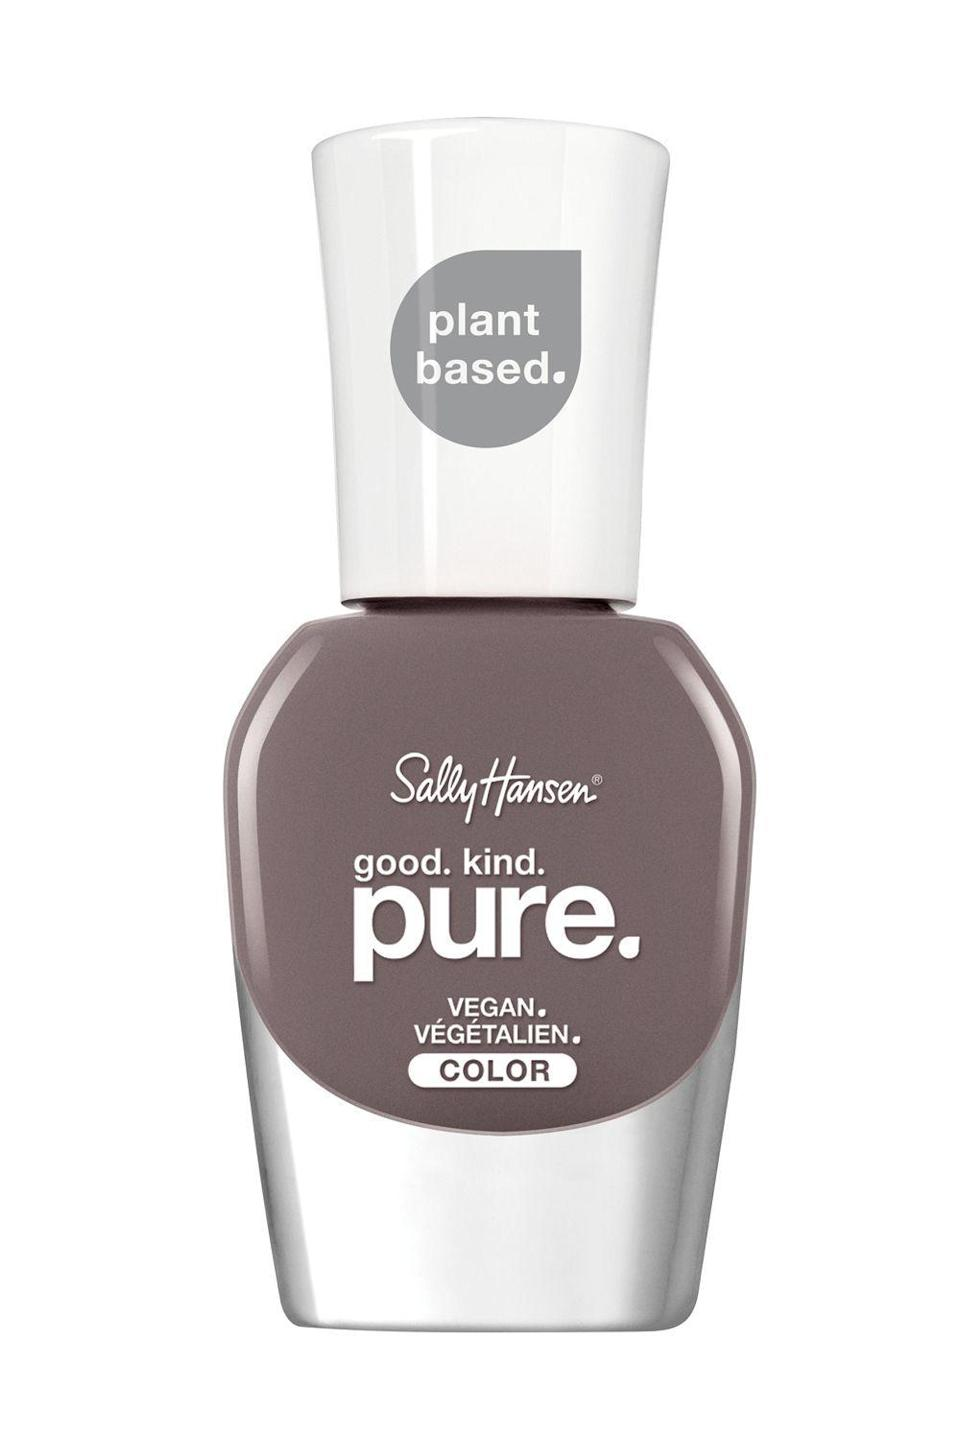 """<p><strong>Sally Hansen</strong></p><p>ulta.com</p><p><strong>$8.99</strong></p><p><a href=""""https://go.redirectingat.com?id=74968X1596630&url=https%3A%2F%2Fwww.ulta.com%2Fgood-kind-pure-nail-color%3FproductId%3Dpimprod2012689&sref=https%3A%2F%2Fwww.cosmopolitan.com%2Fstyle-beauty%2Fbeauty%2Fg33966550%2Fbest-natural-nail-polish%2F"""" rel=""""nofollow noopener"""" target=""""_blank"""" data-ylk=""""slk:Shop Now"""" class=""""link rapid-noclick-resp"""">Shop Now</a></p><p>I've been using <a href=""""https://www.cosmopolitan.com/style-beauty/beauty/g28668988/best-drugstore-skincare/"""" rel=""""nofollow noopener"""" target=""""_blank"""" data-ylk=""""slk:drugstore"""" class=""""link rapid-noclick-resp"""">drugstore</a> nail polish brand Sally Hansen for years, so when I heard they were launching a plant-based 16-free (!!) nail polish, you better believe I was stoked. This slate-gray <strong>wears just as well as the brand's other traditional polishes</strong>, but is made without any of the questionable ingredients.</p>"""